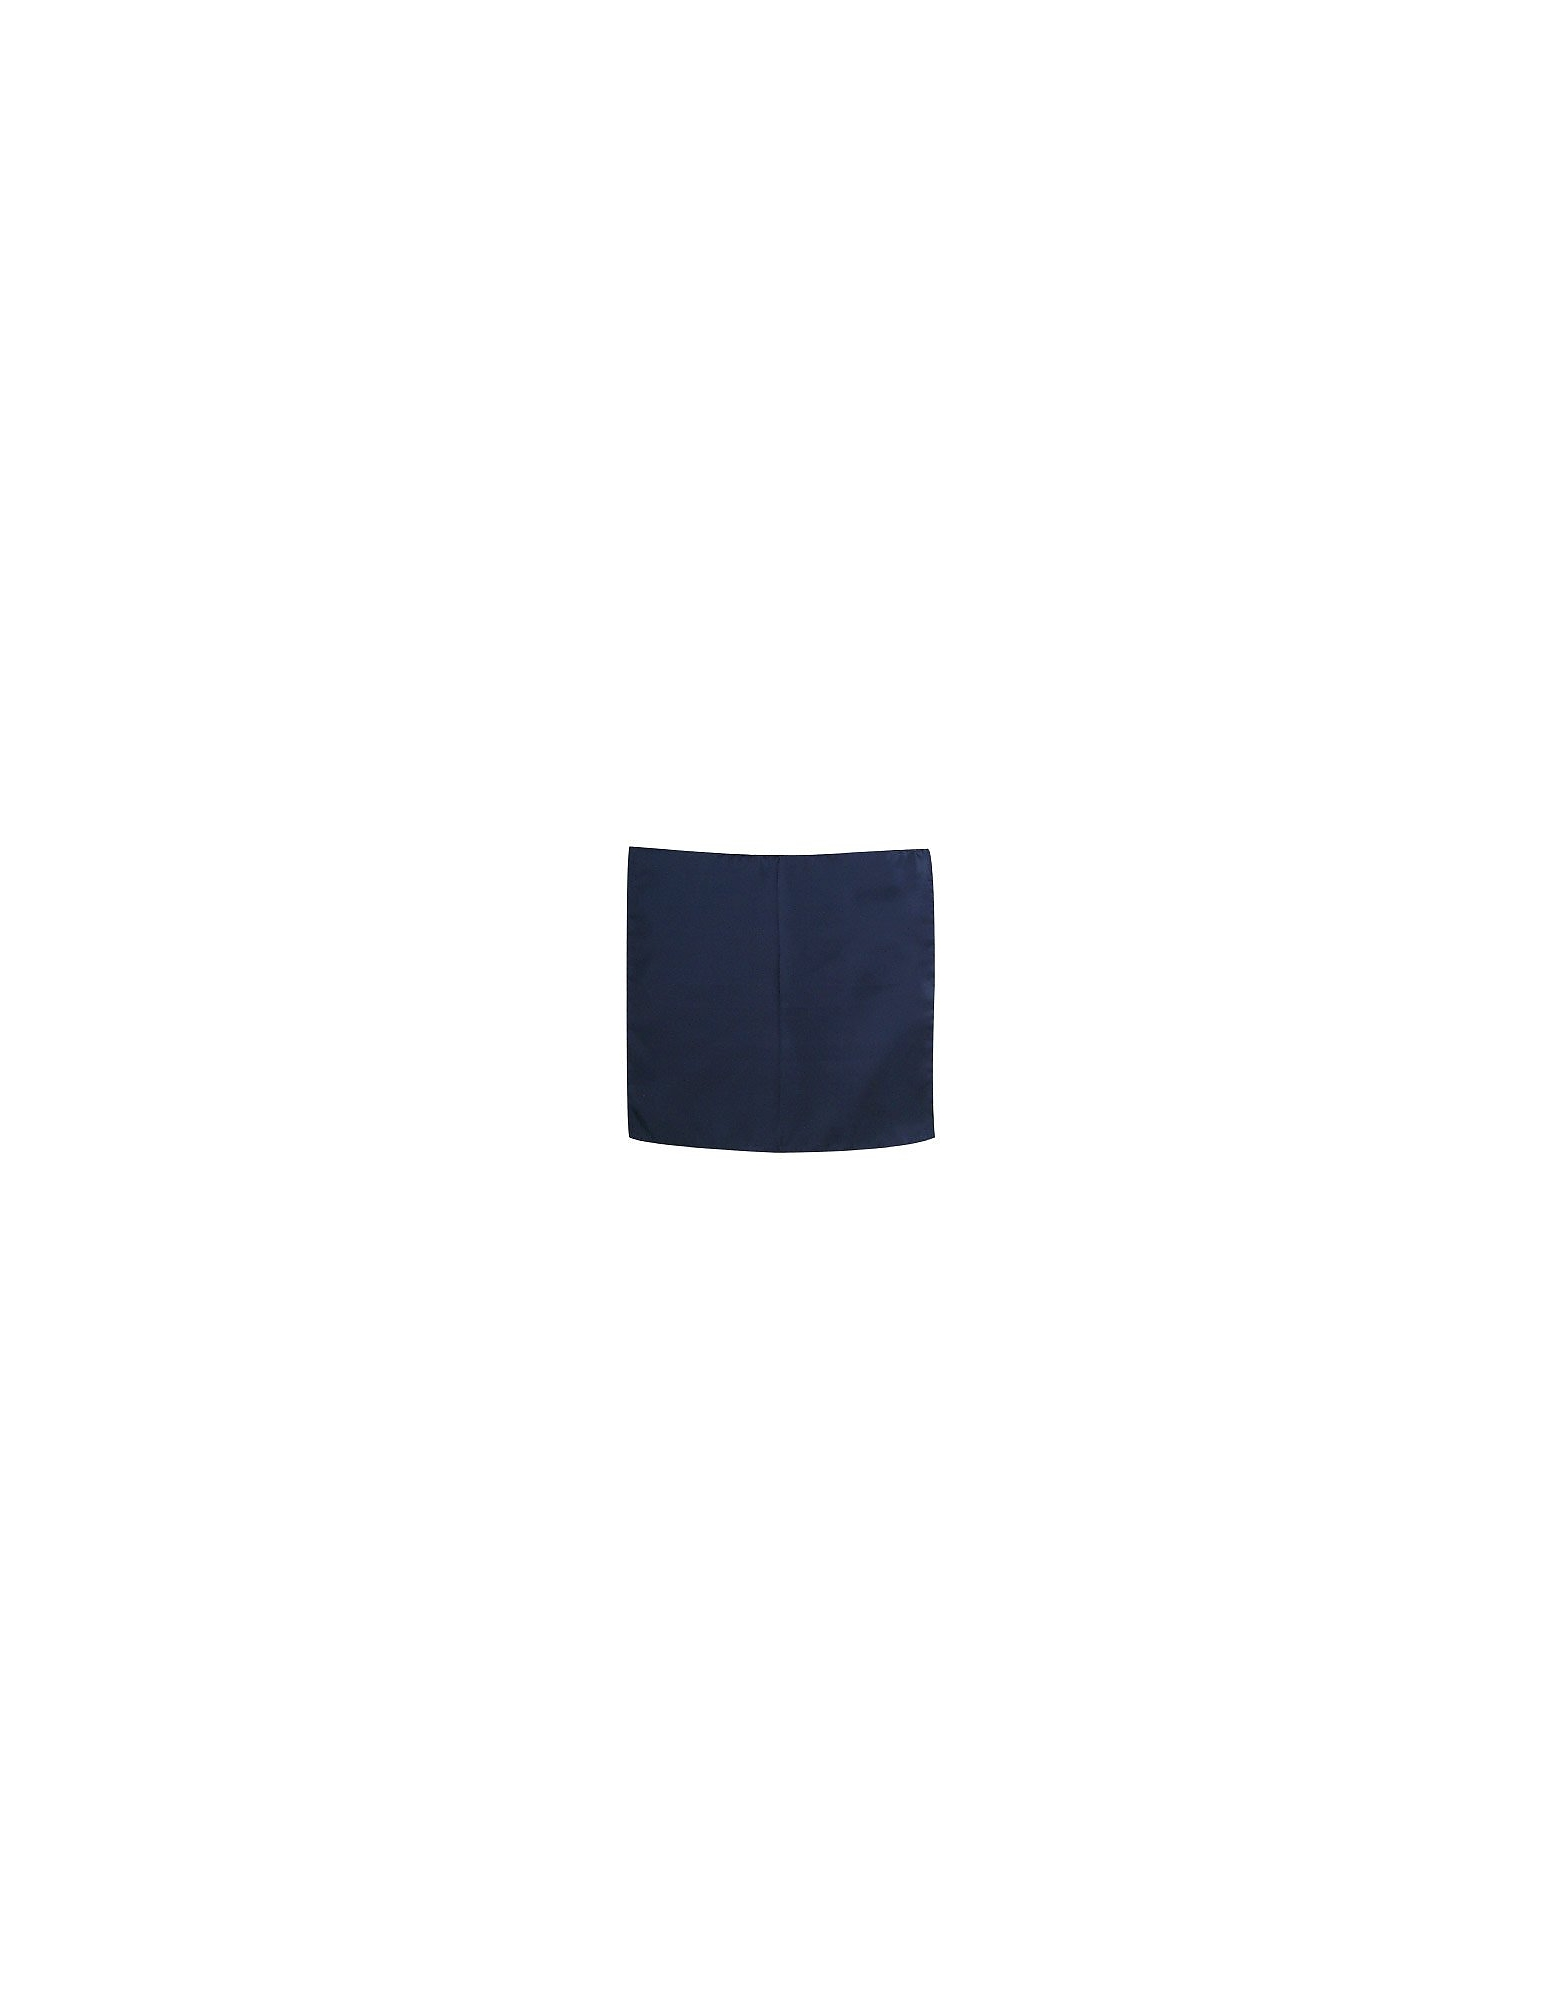 Image of Forzieri Designer Pocket Squares, Navy Blue Silk Pocket Square